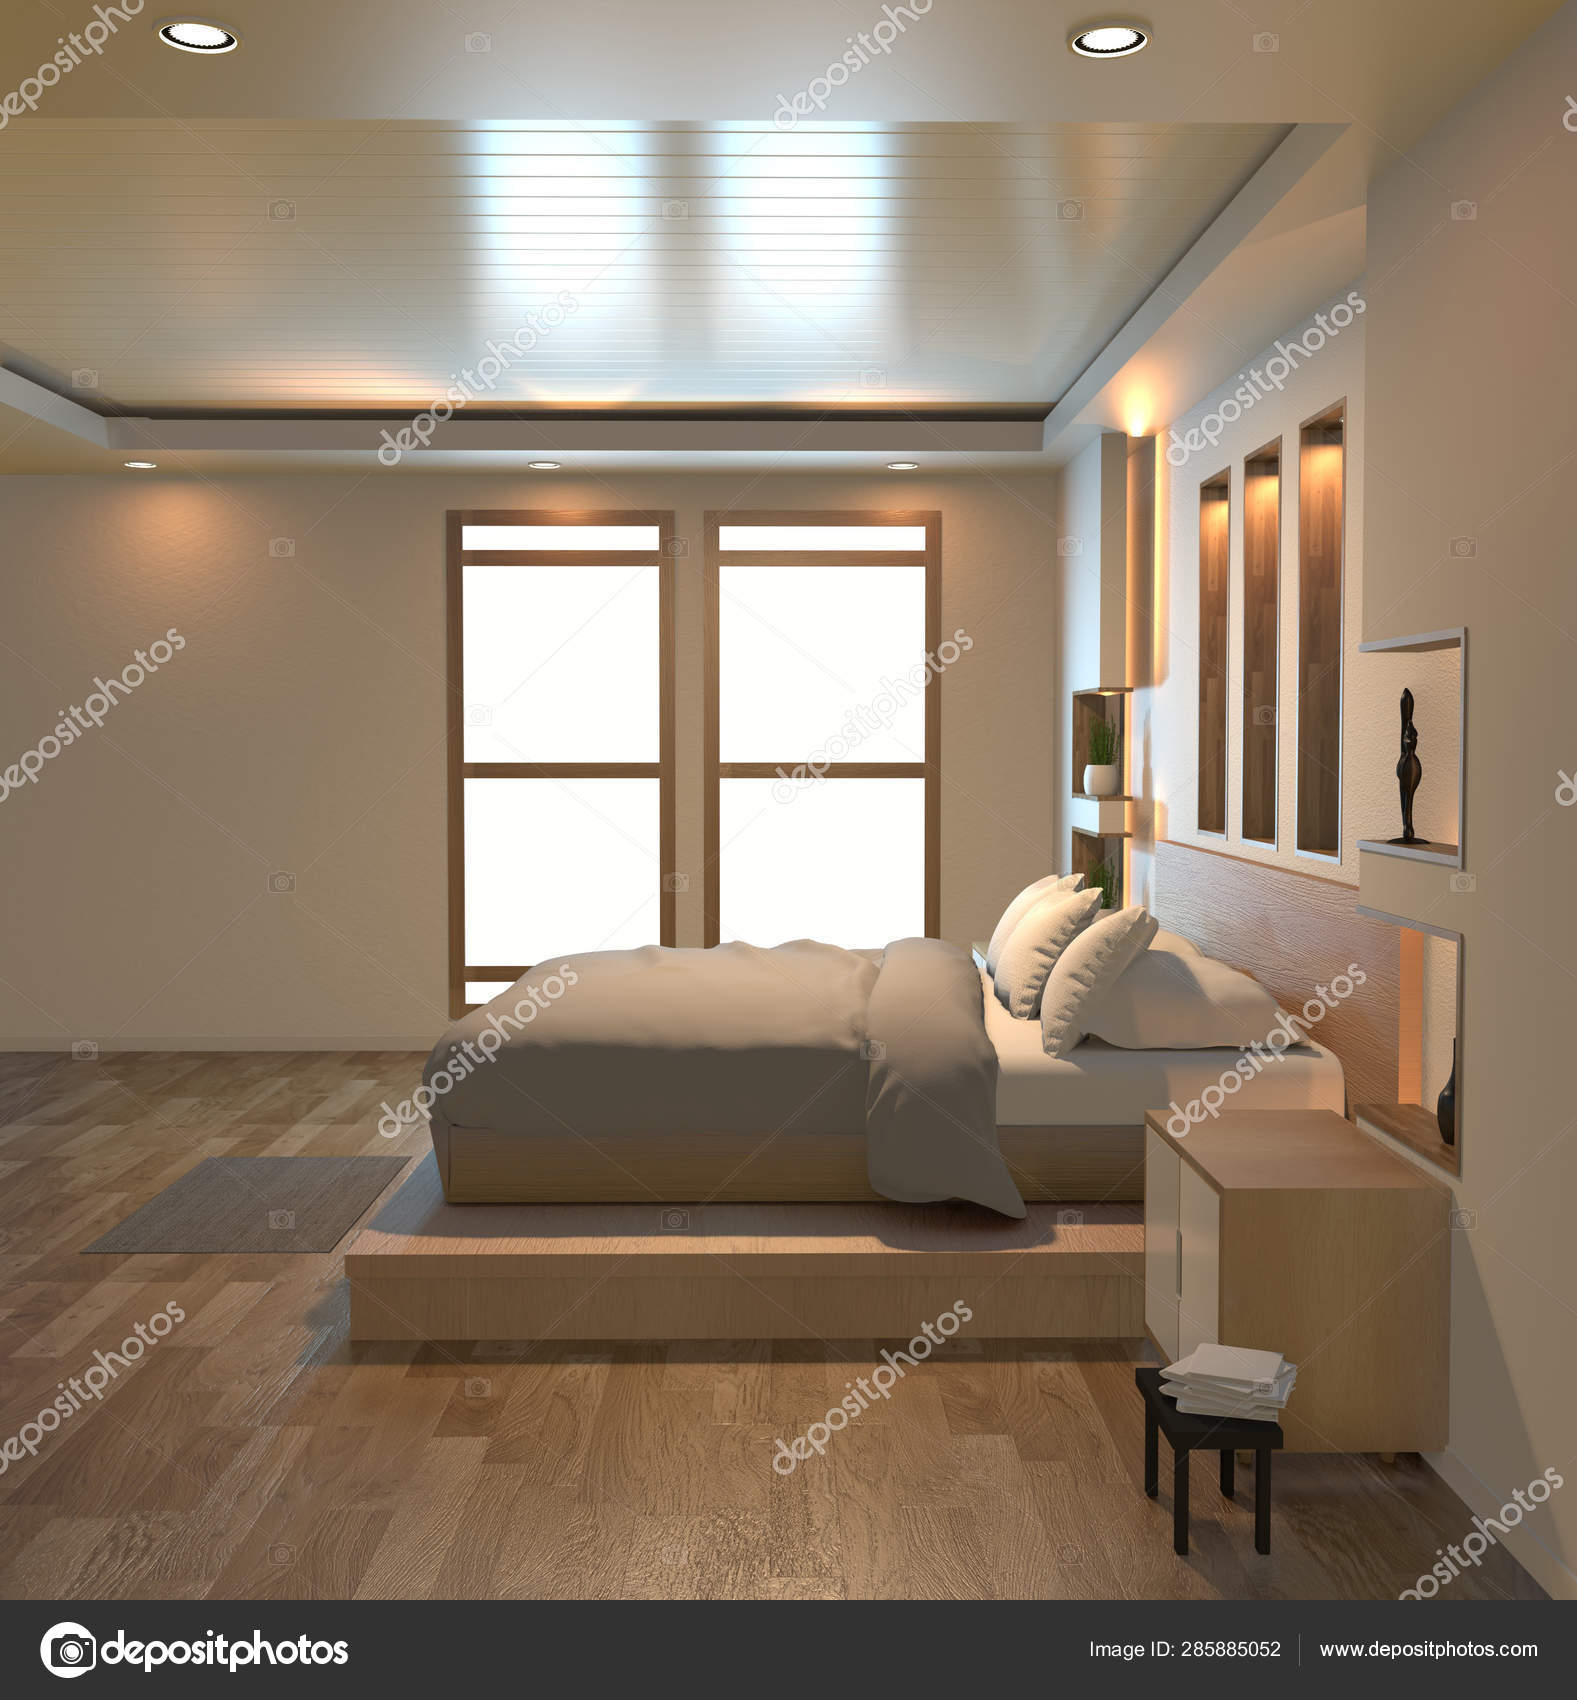 Modern Zen Peaceful Bedroom Japan Style Bedroom With Shelf Wall Stock Photo C Minny0012011 Gmail Com 285885052